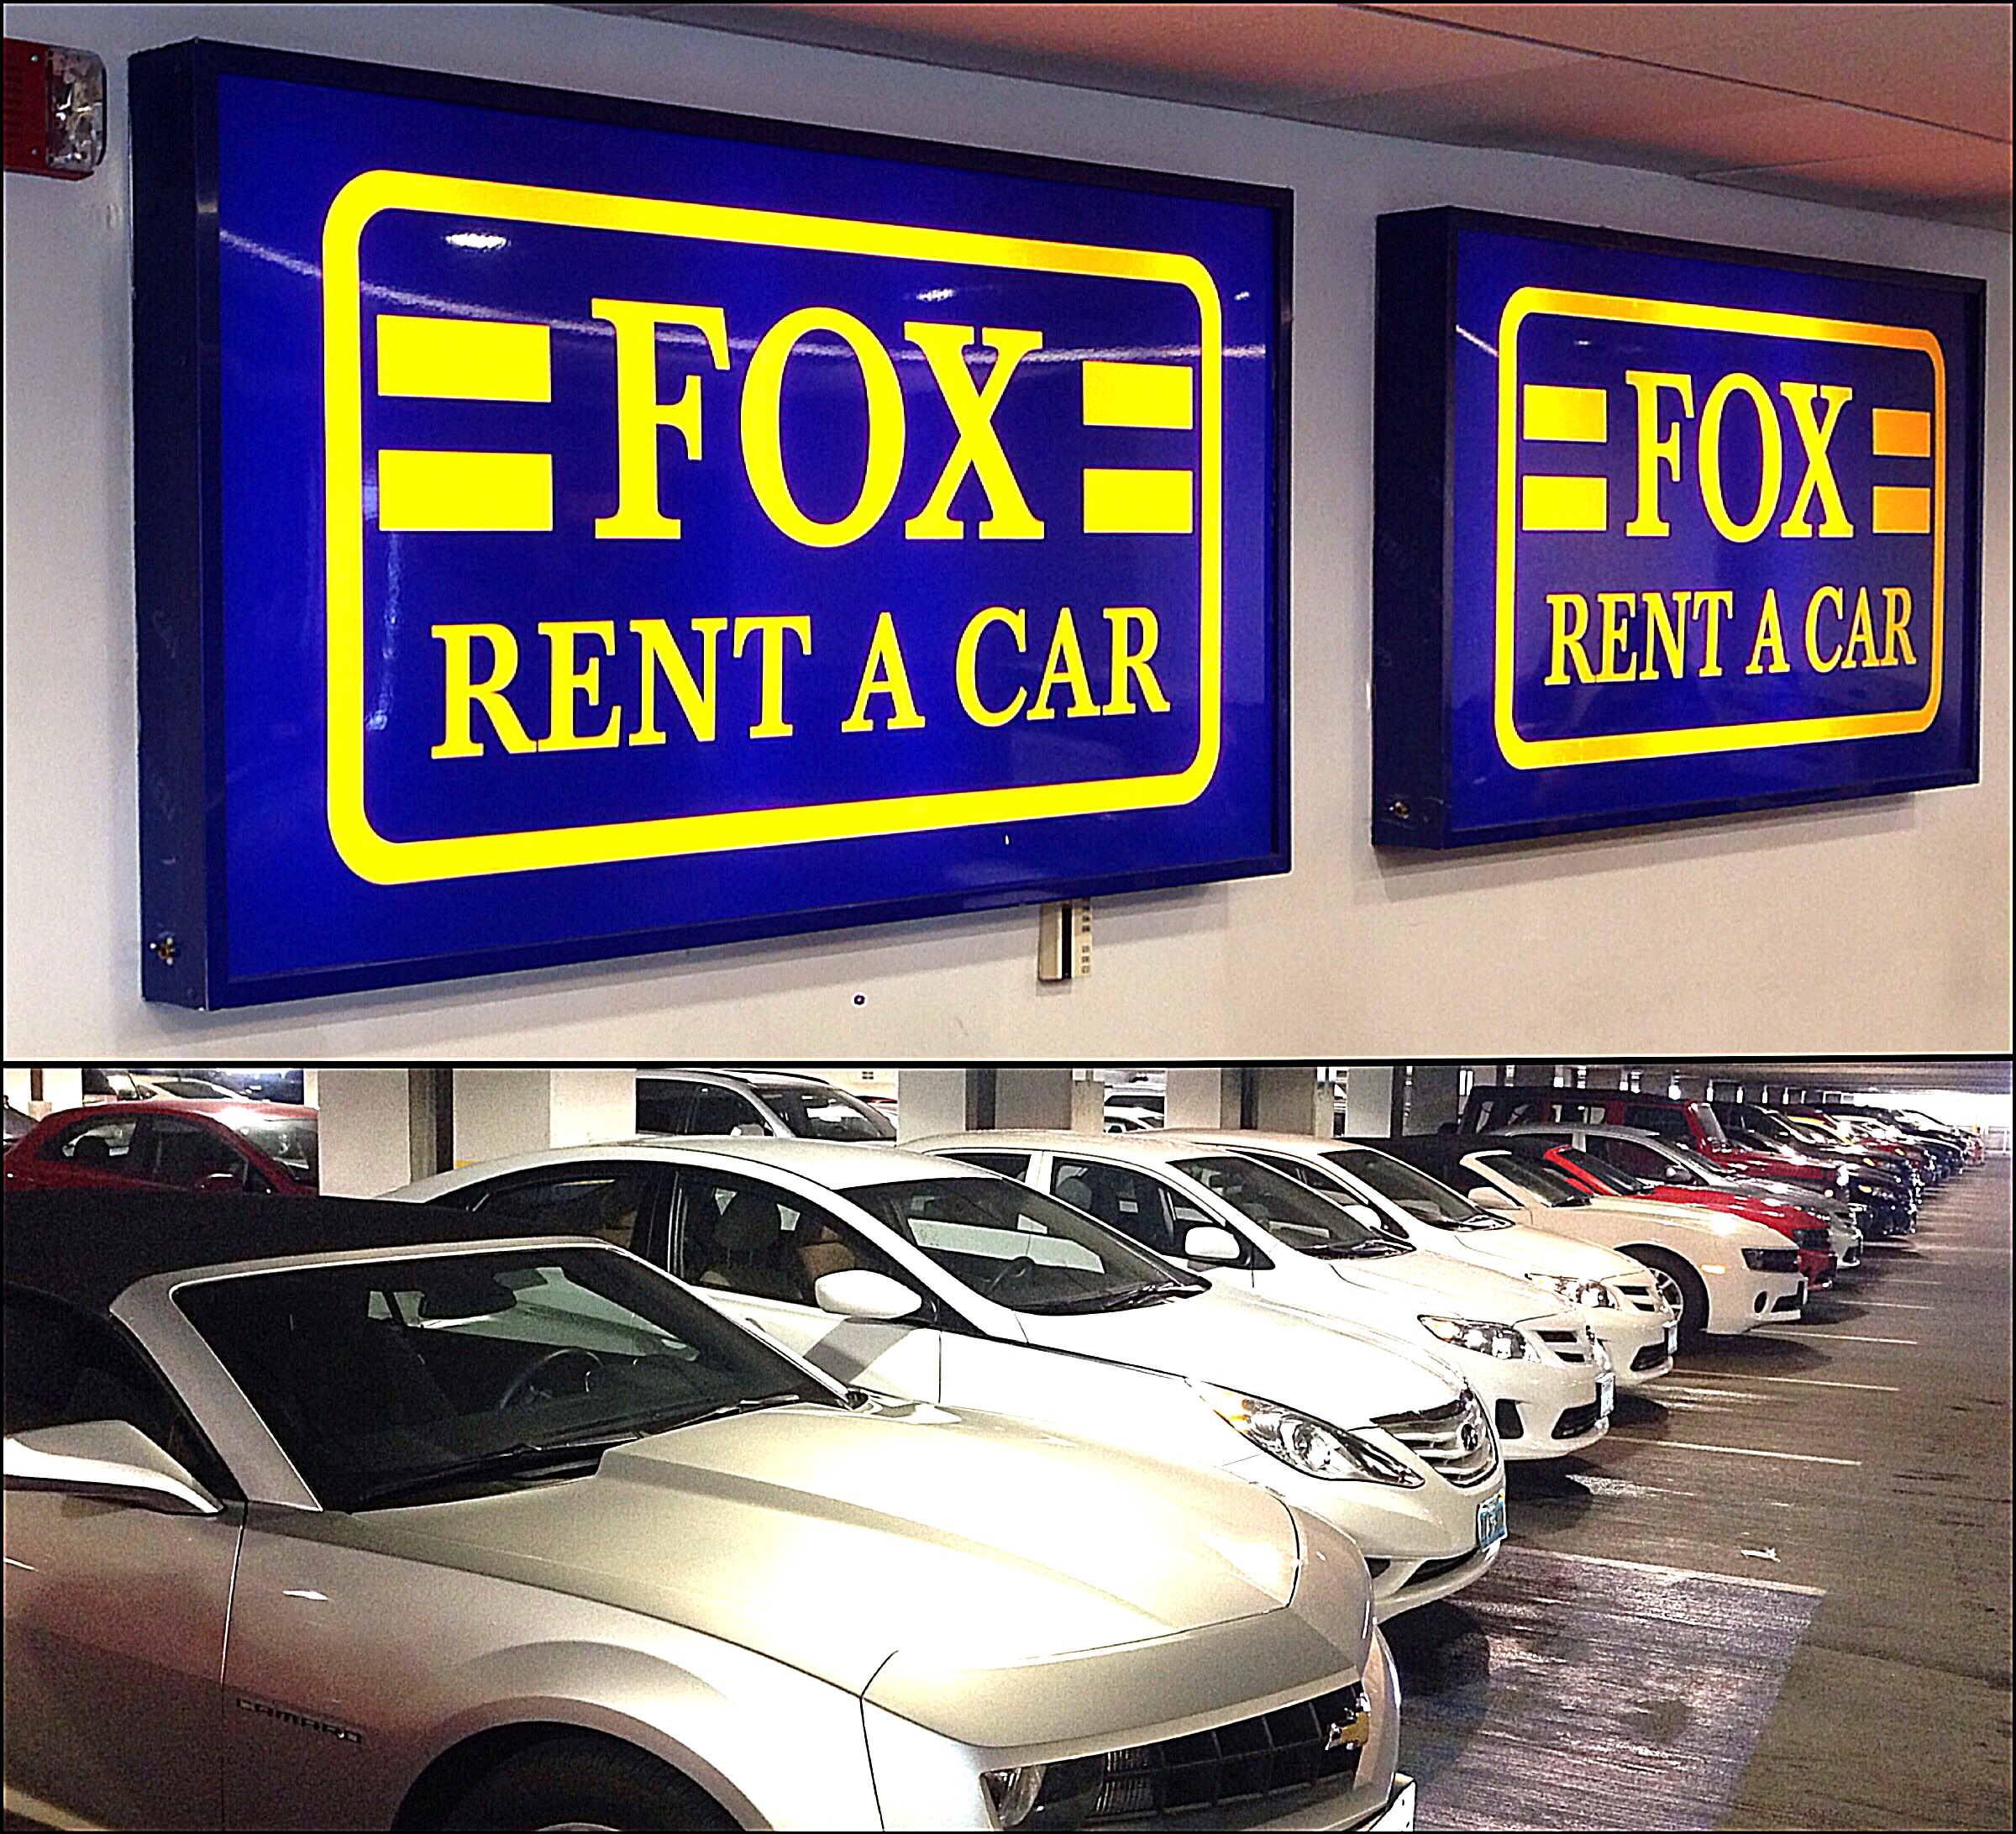 Fox's minimum age to rent a car in Puerto Vallarta is Make sure to check Fox's policies, as there could be additional fees if you are under 25 in most cases or for higher category rentals especially/5(3).